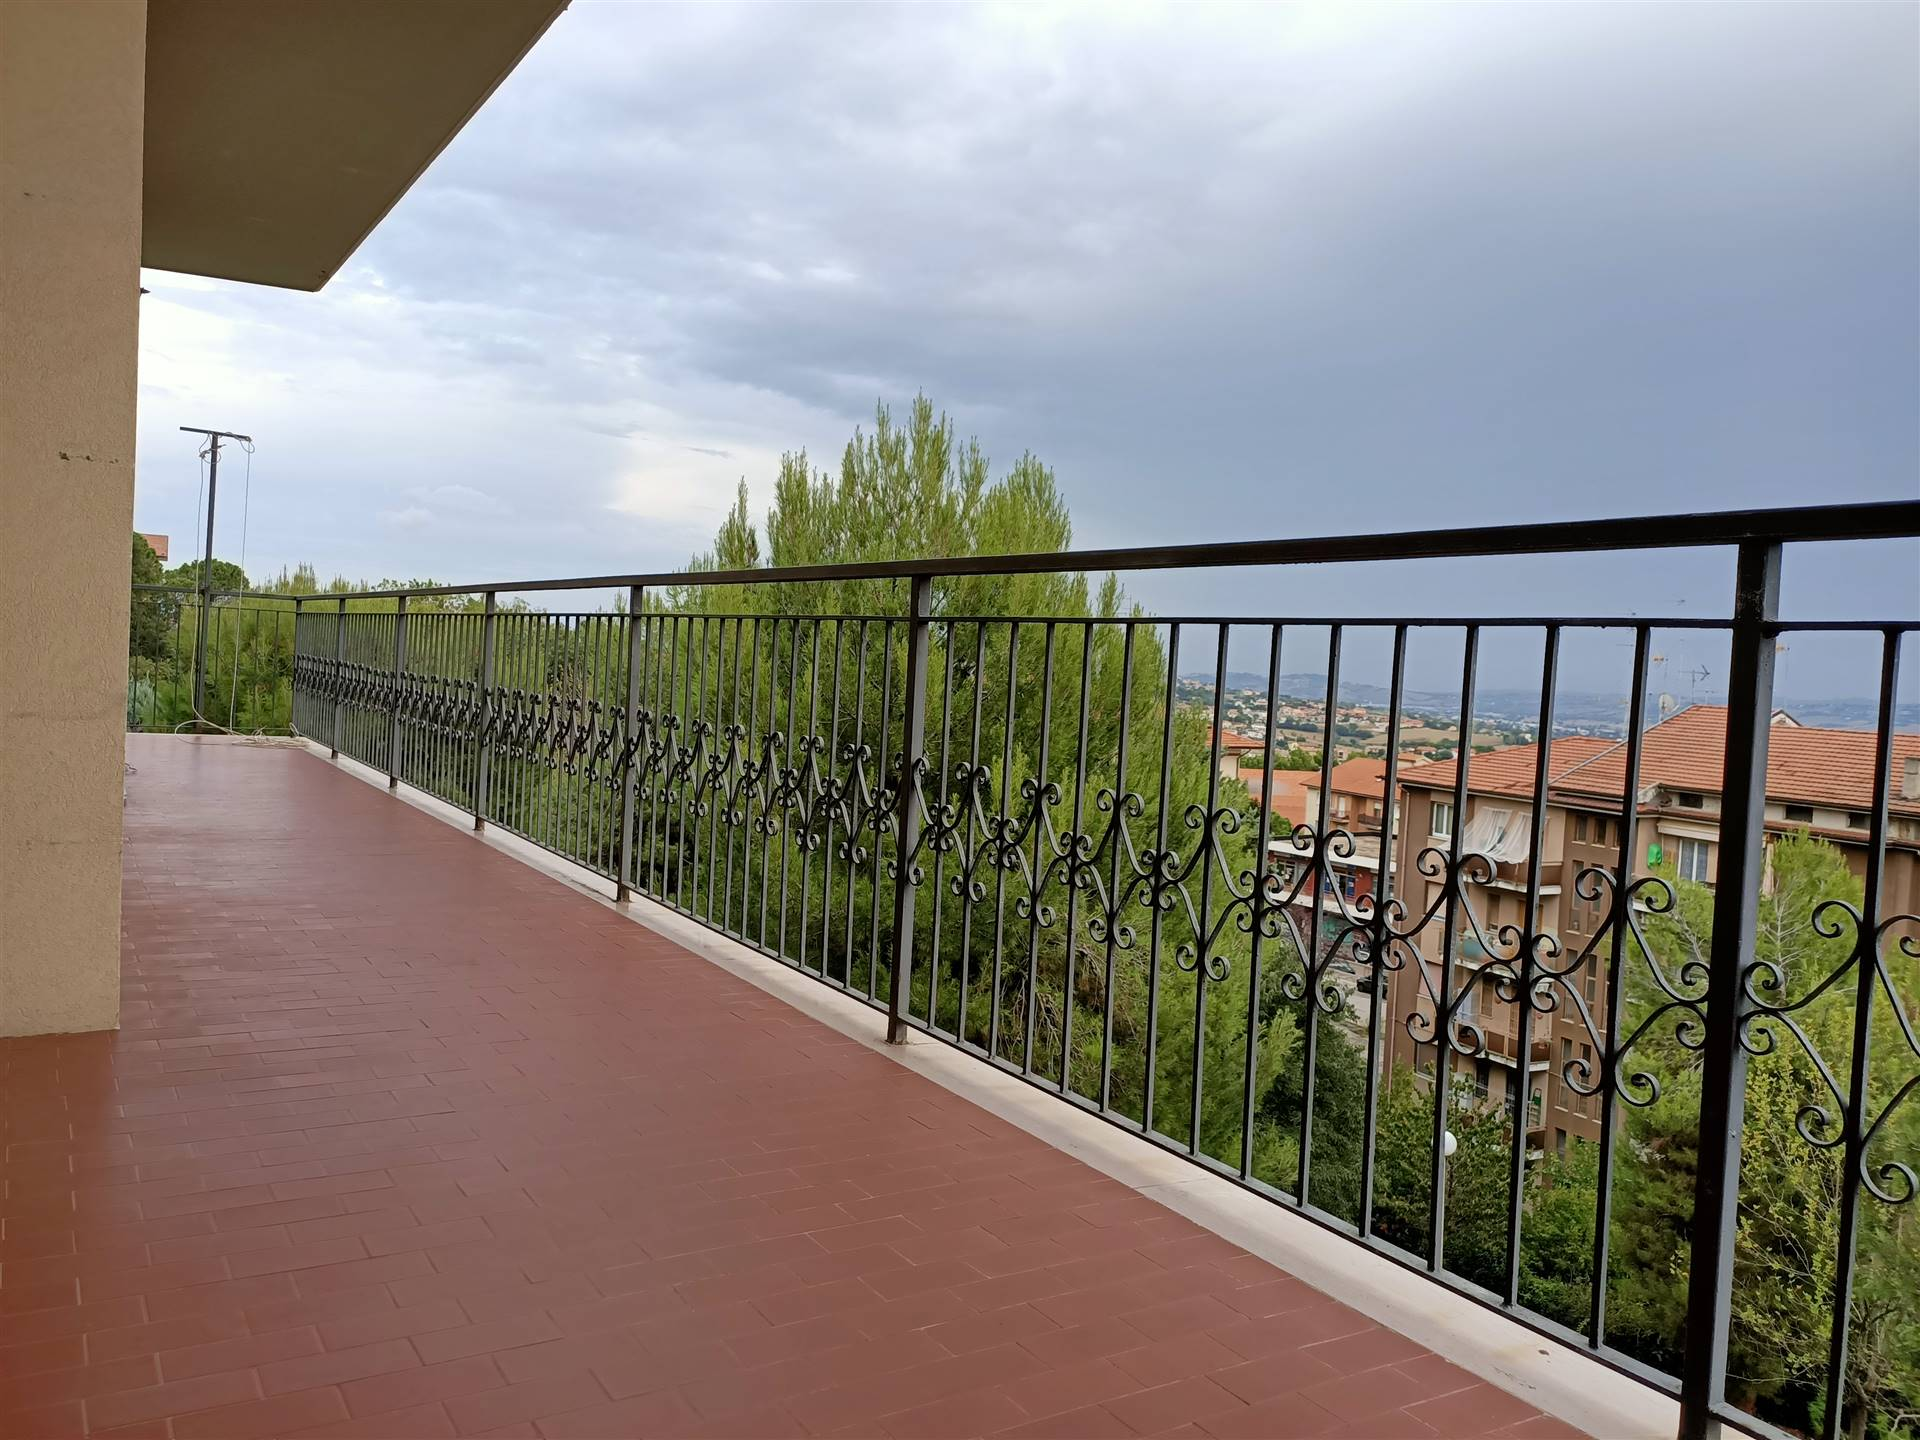 OSIMO, Apartment for sale of 127 Sq. mt., Habitable, Heating Individual heating system, placed at 1° on 3, composed by: 6.5 Rooms, Separate kitchen, ,